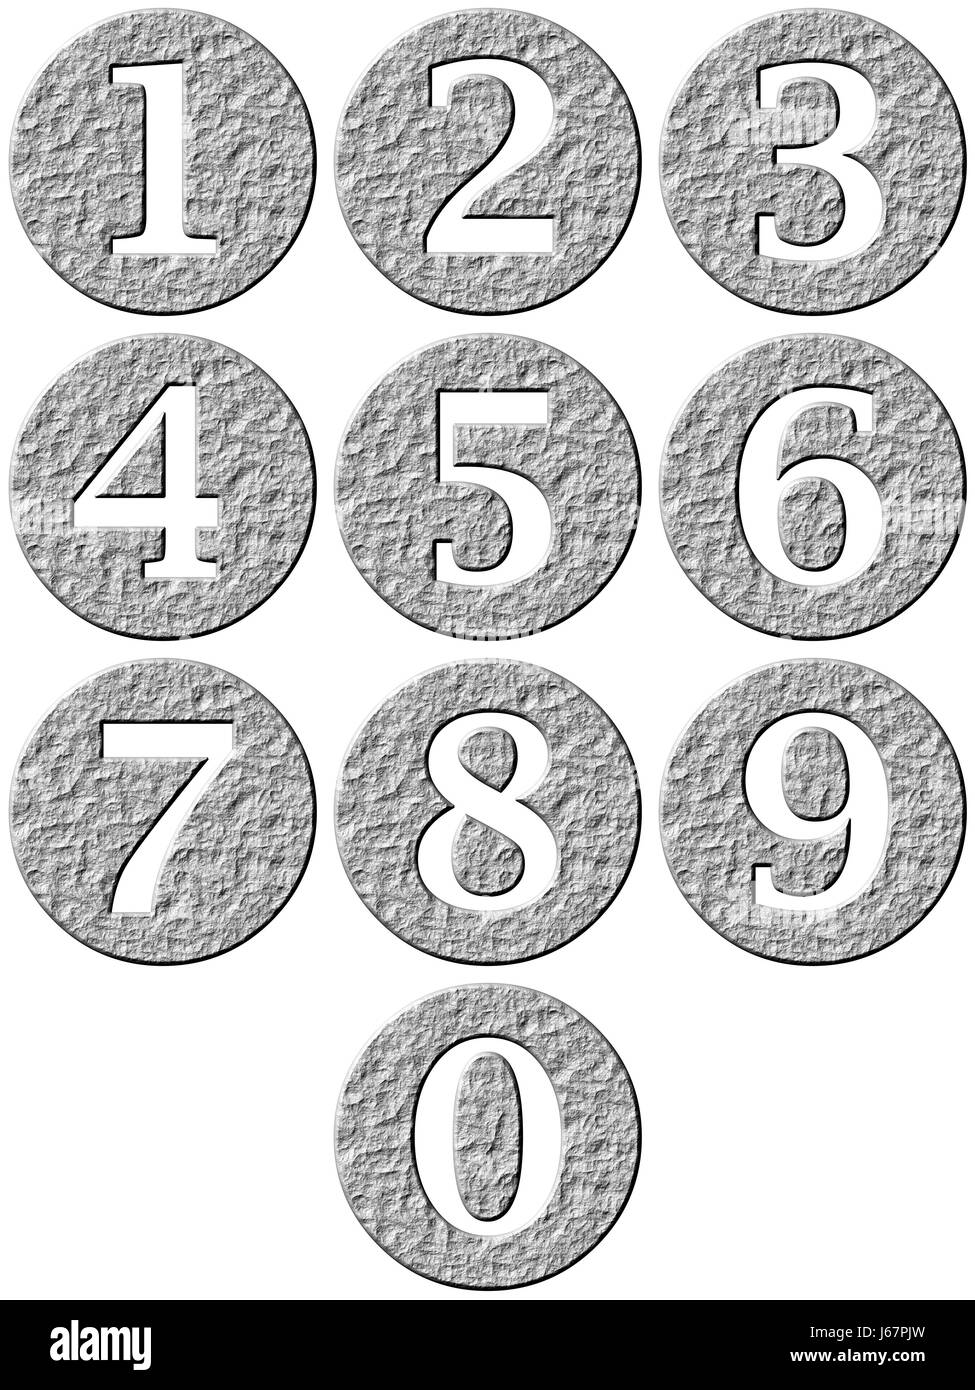 stone graphic rock number sign icon numeral conspicuous pictographic - Stock Image